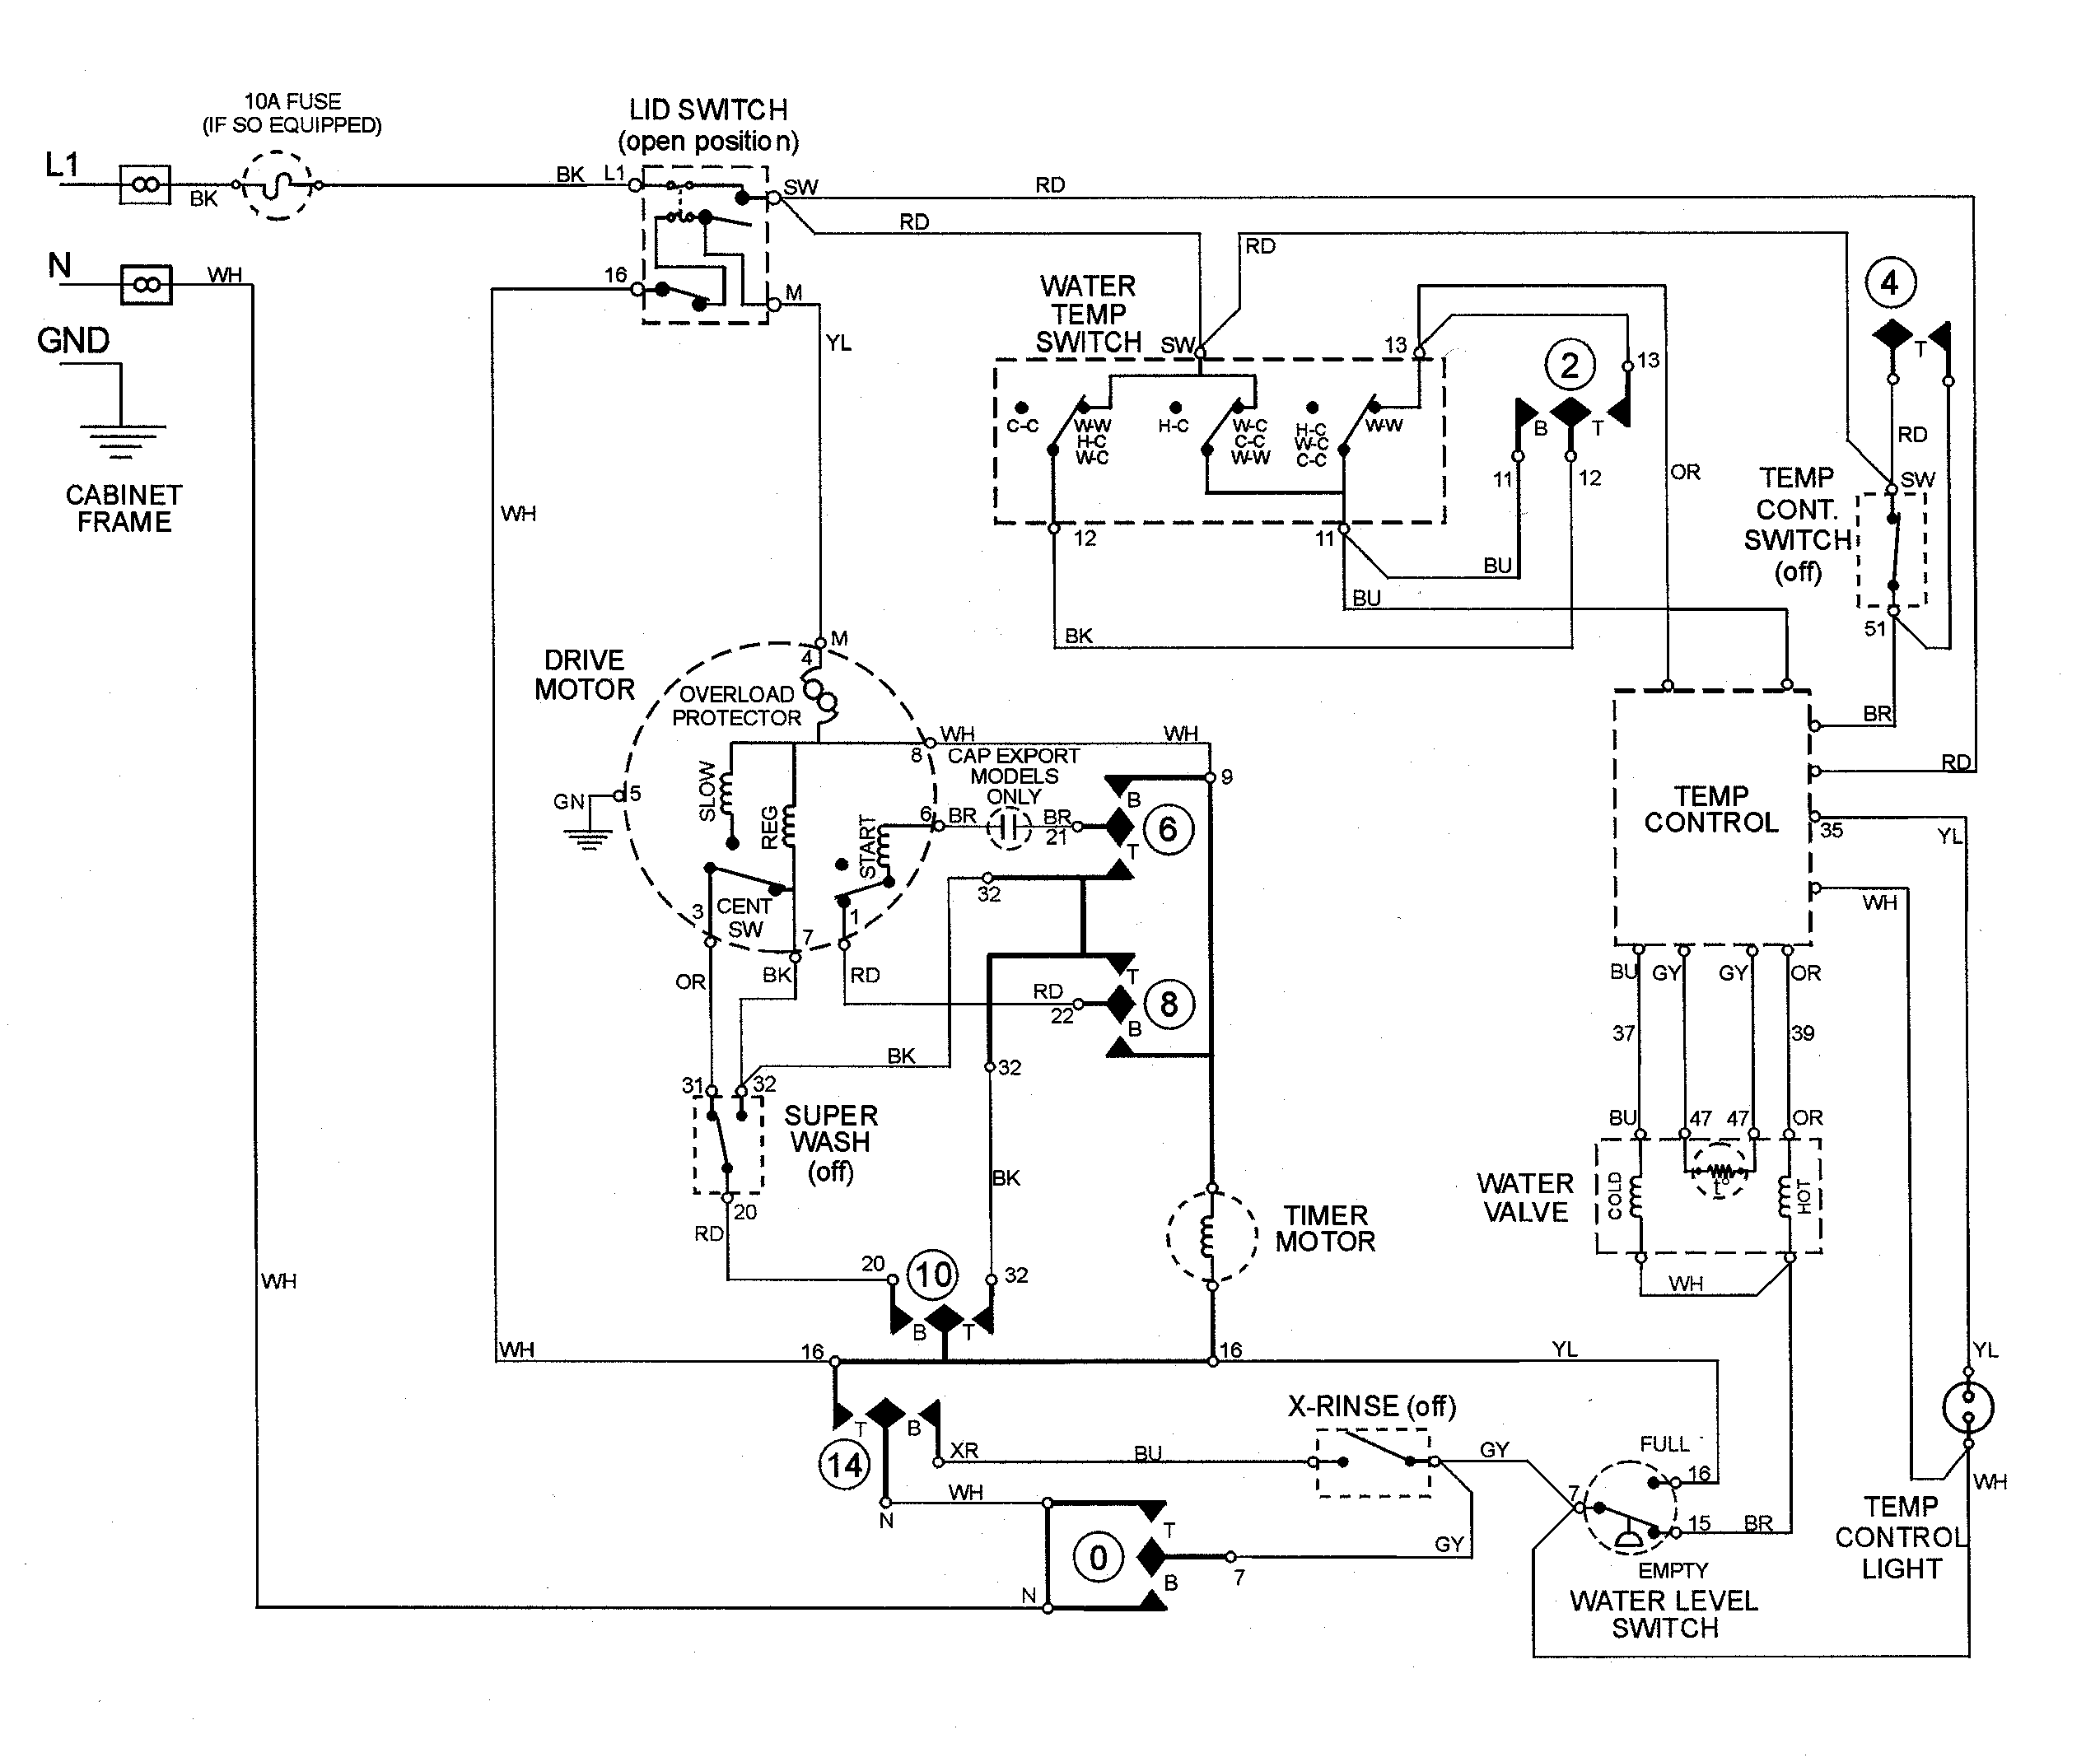 schematics on washing machine washing machines wiring diagram for youge washing machine motor wiring diagram, ge, wiring diagram and ge washing machine motor